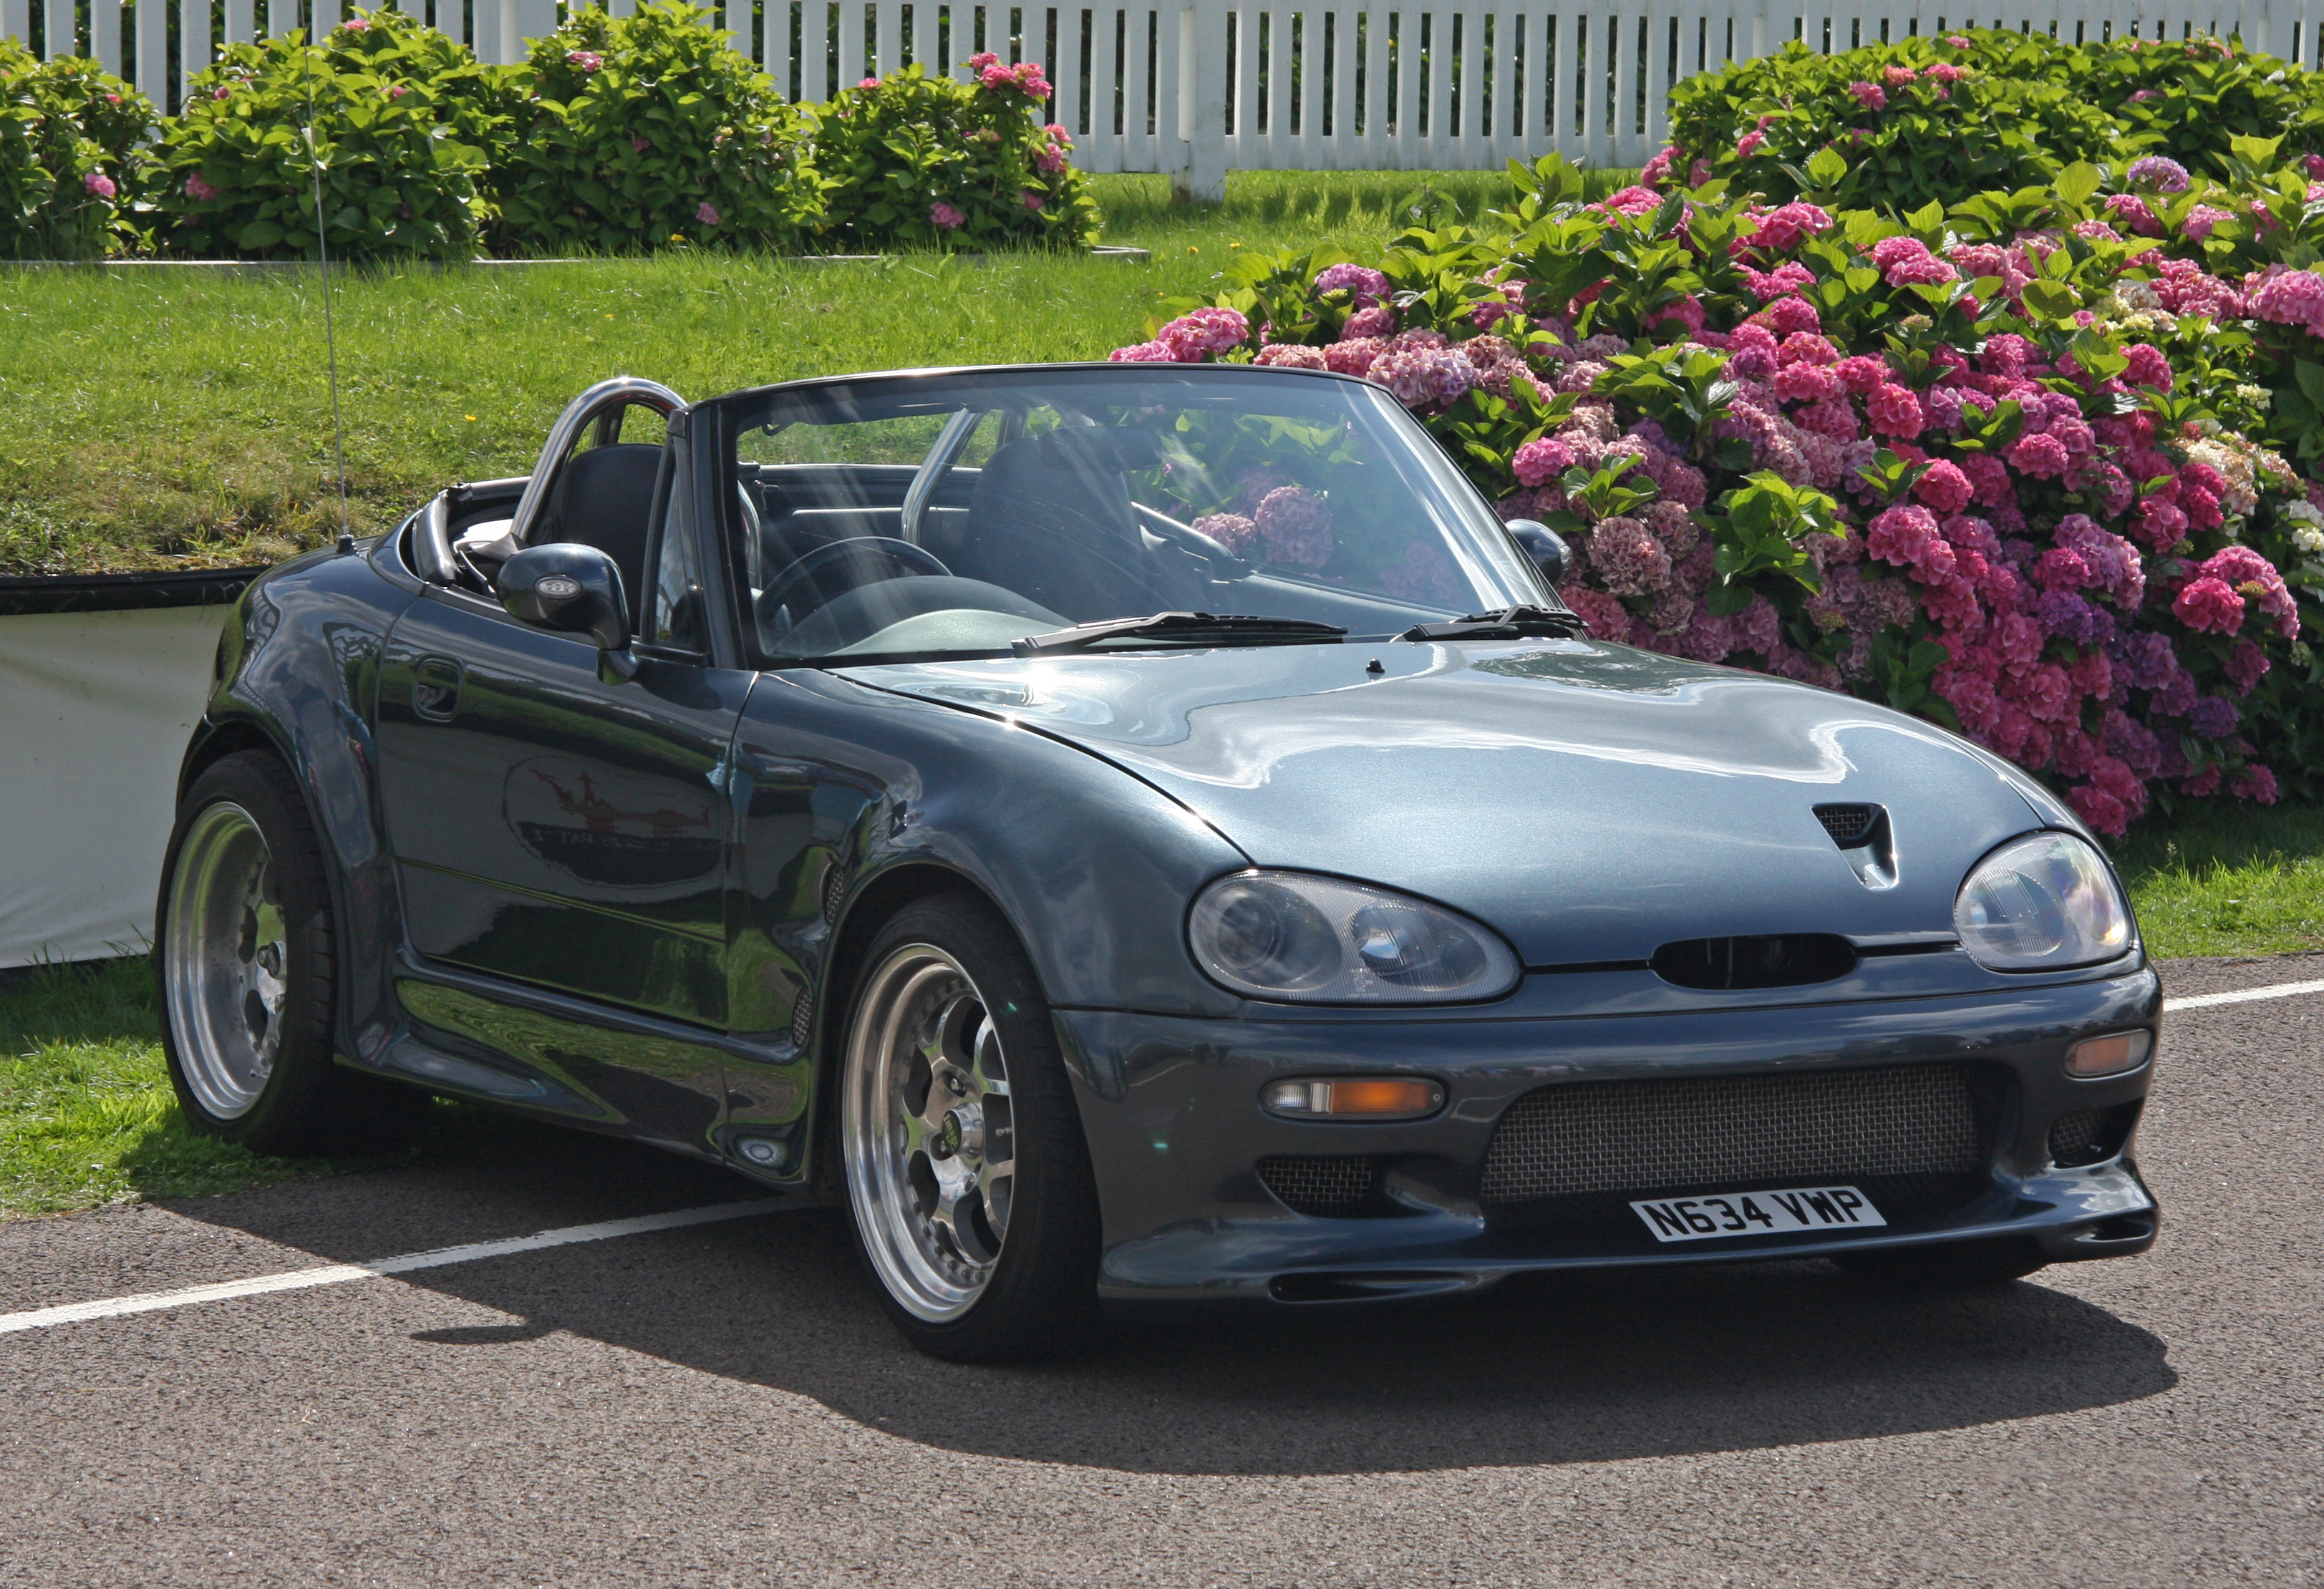 Cappuccino car image transparent stock Suzuki Cappuccino - thewheelsofsteel image transparent stock